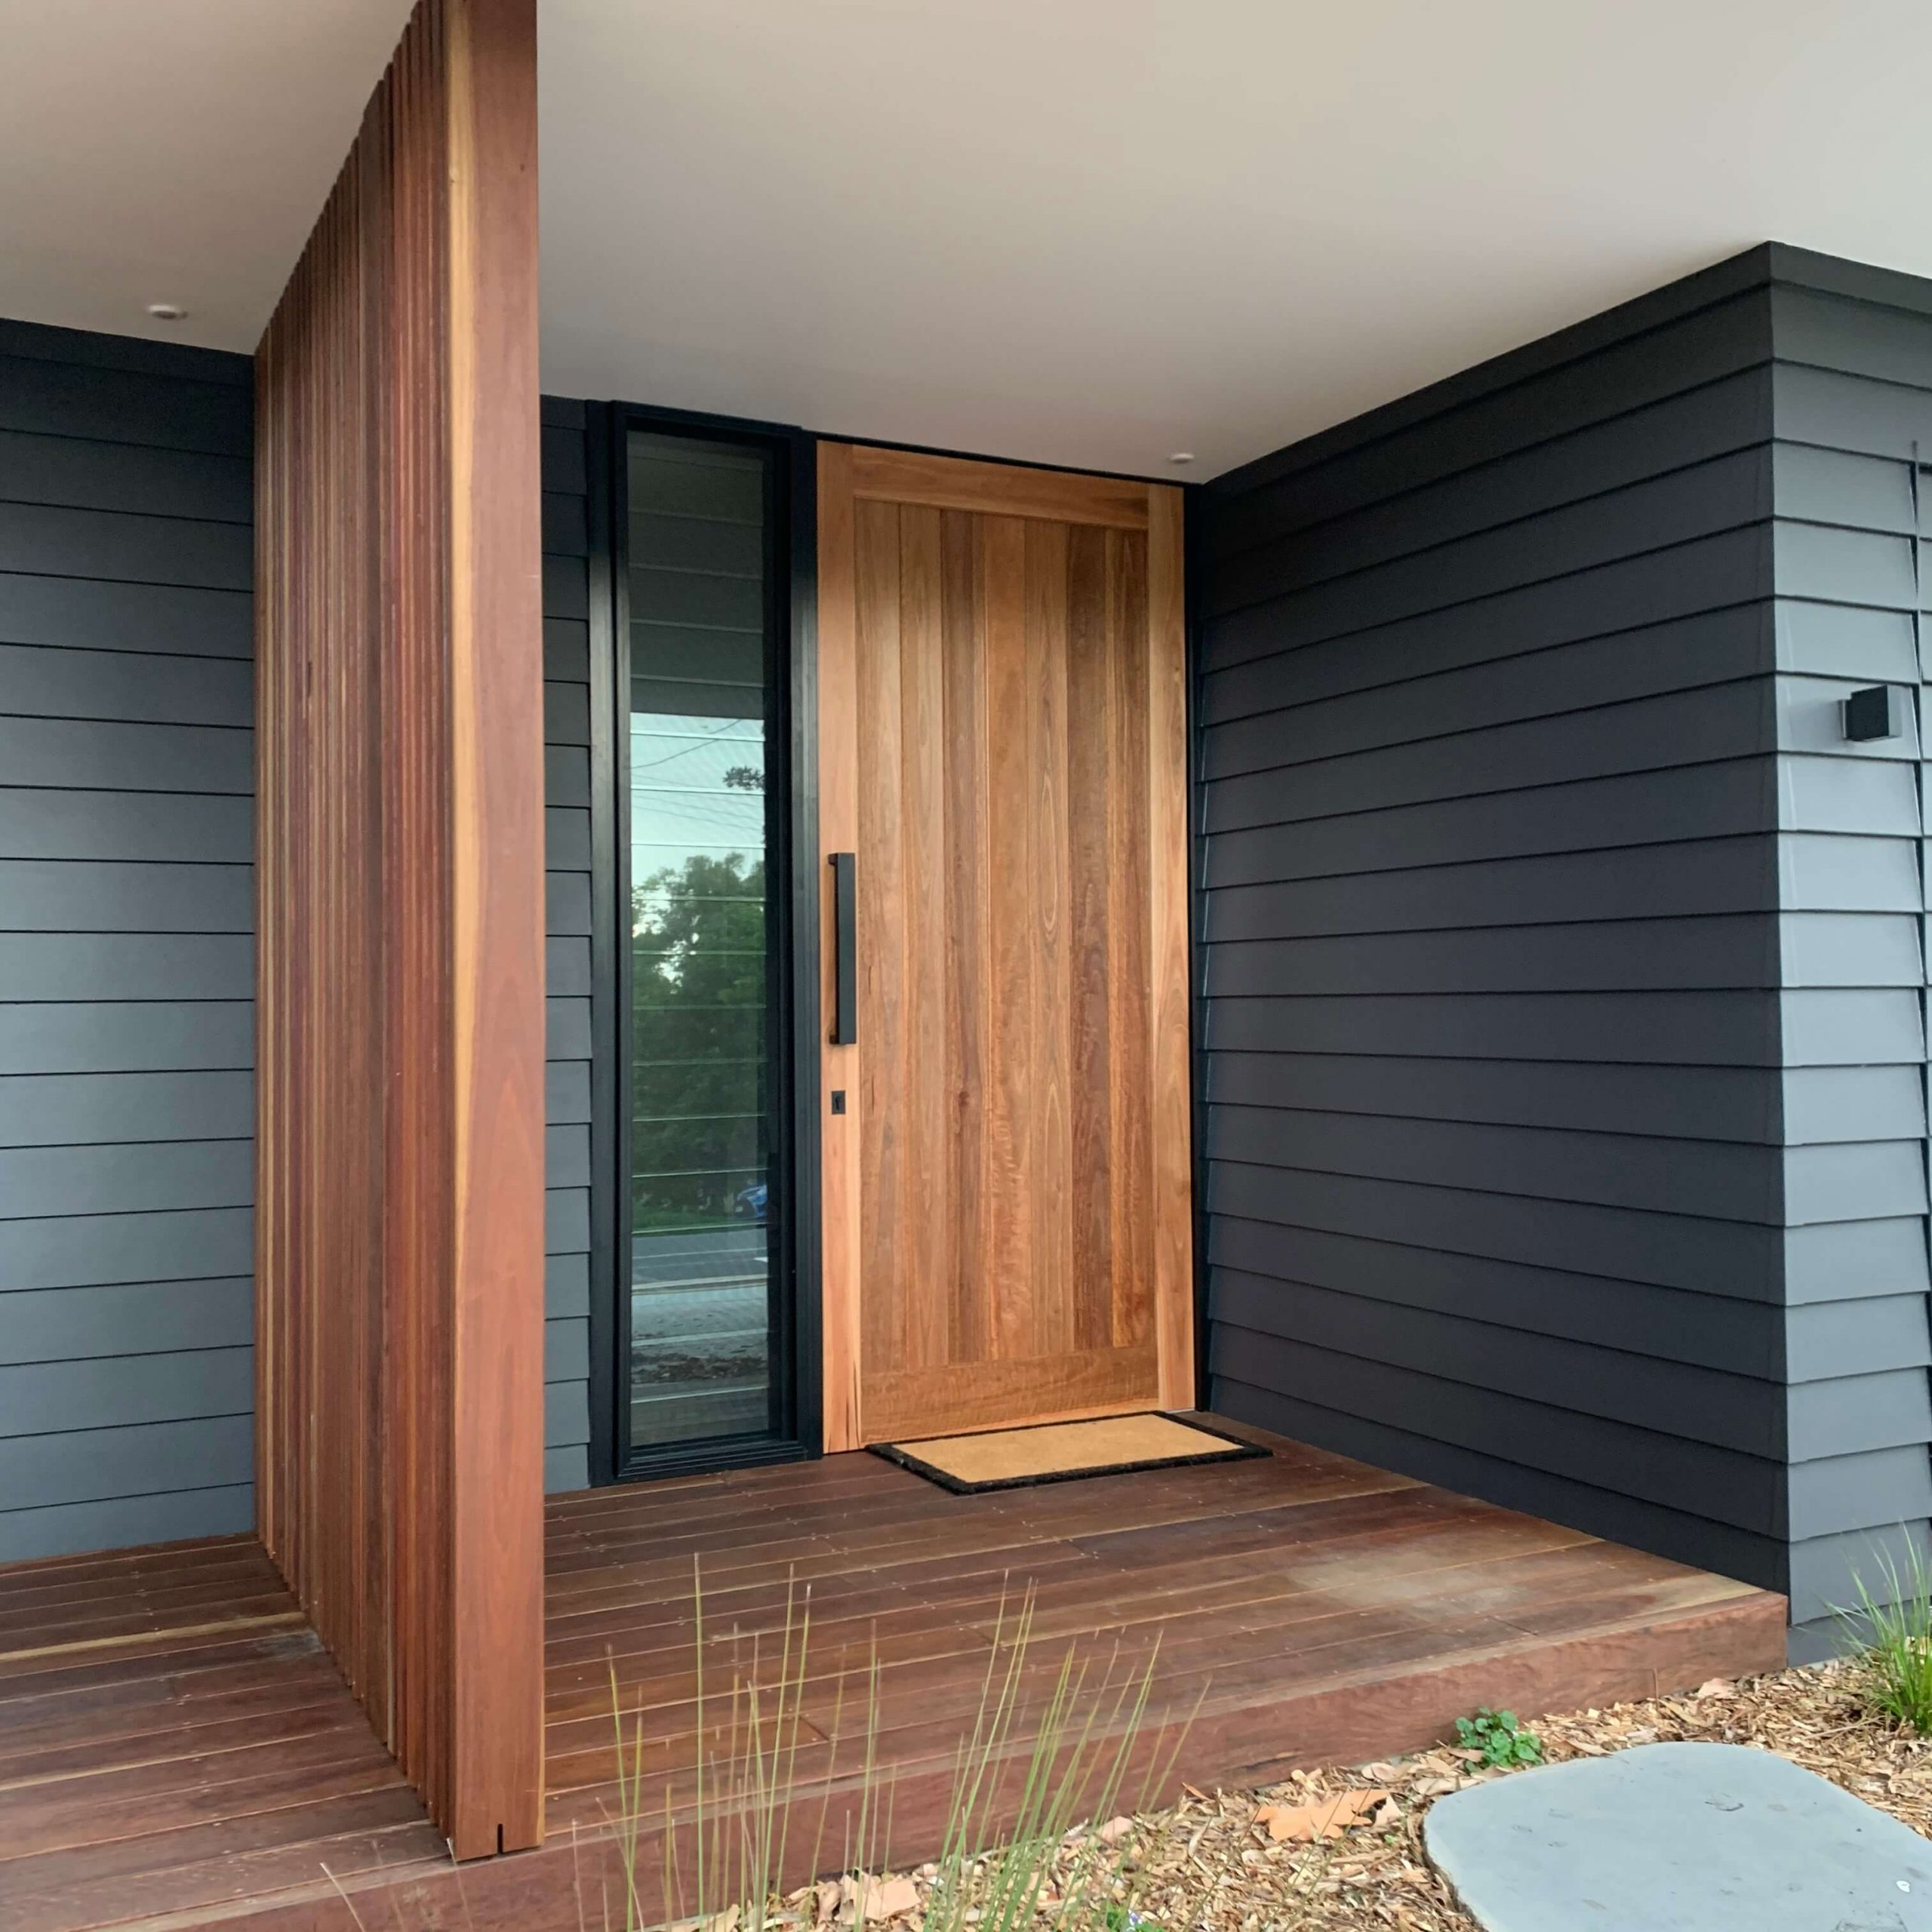 Timber shiplap front door with black hardware accompanied by a full length glass louvre window